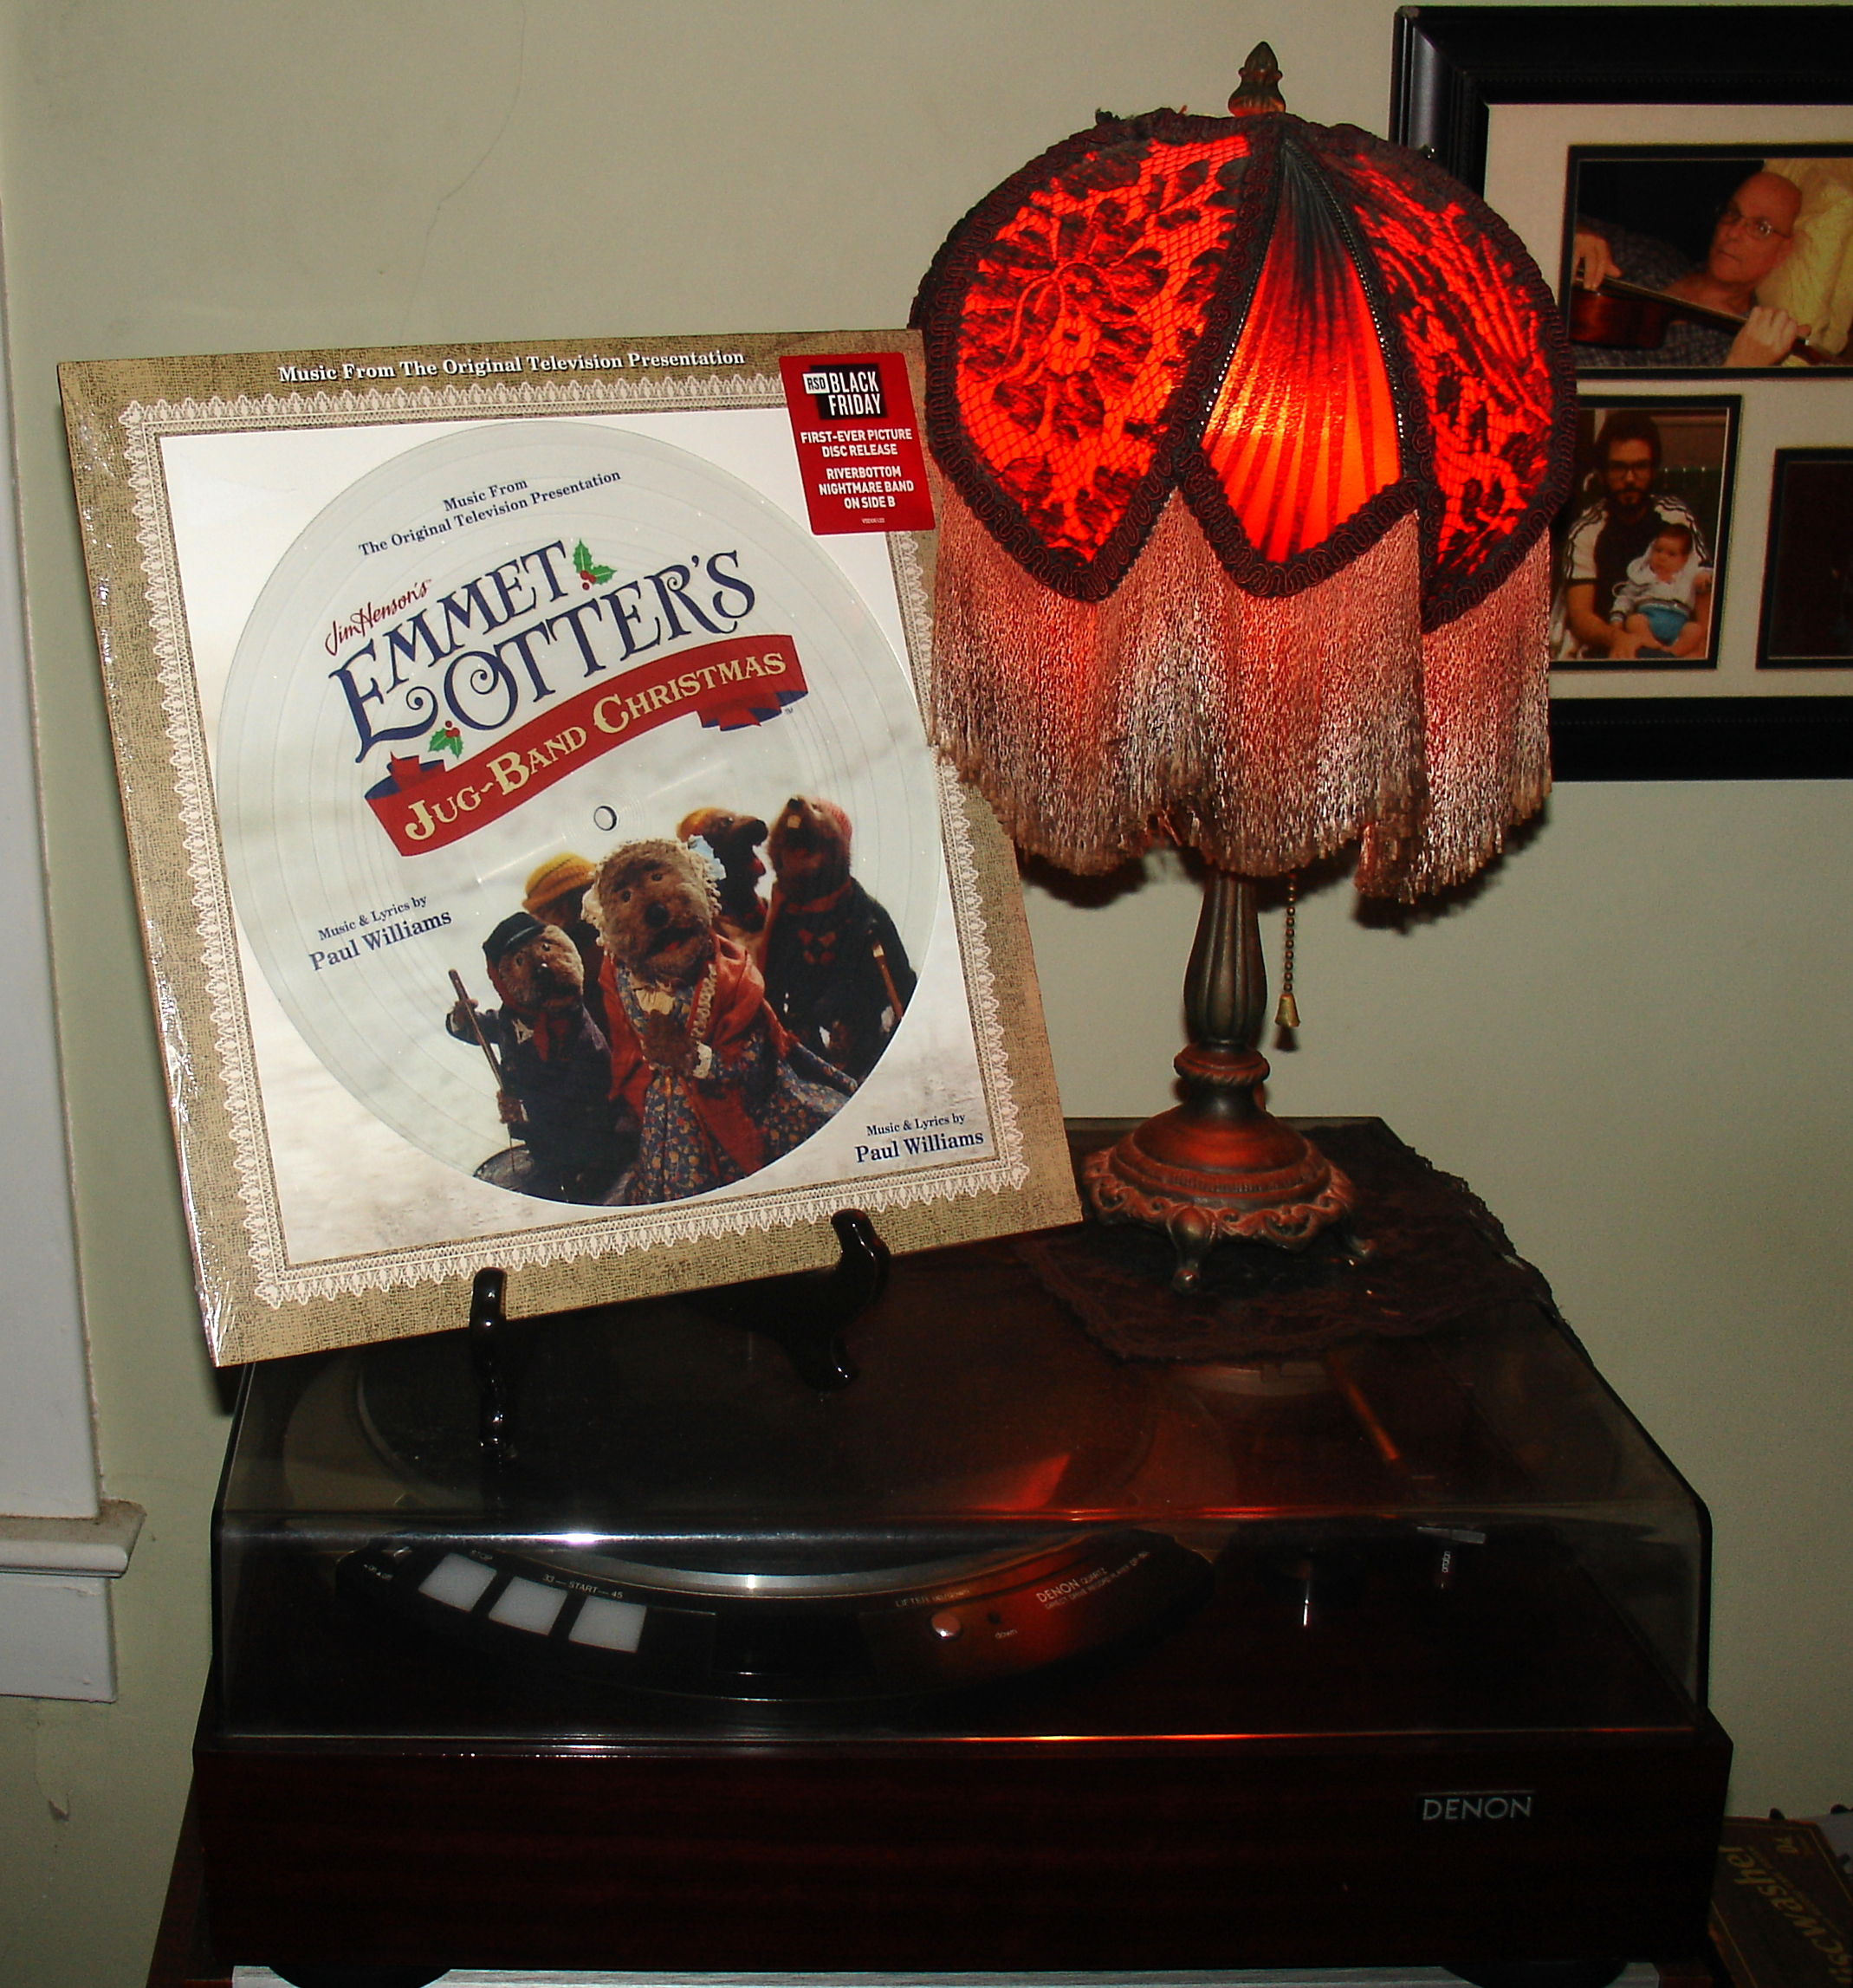 Emmet Otter's Jug-Band Christmas RSD 2019 Picture Disc 12-17-19